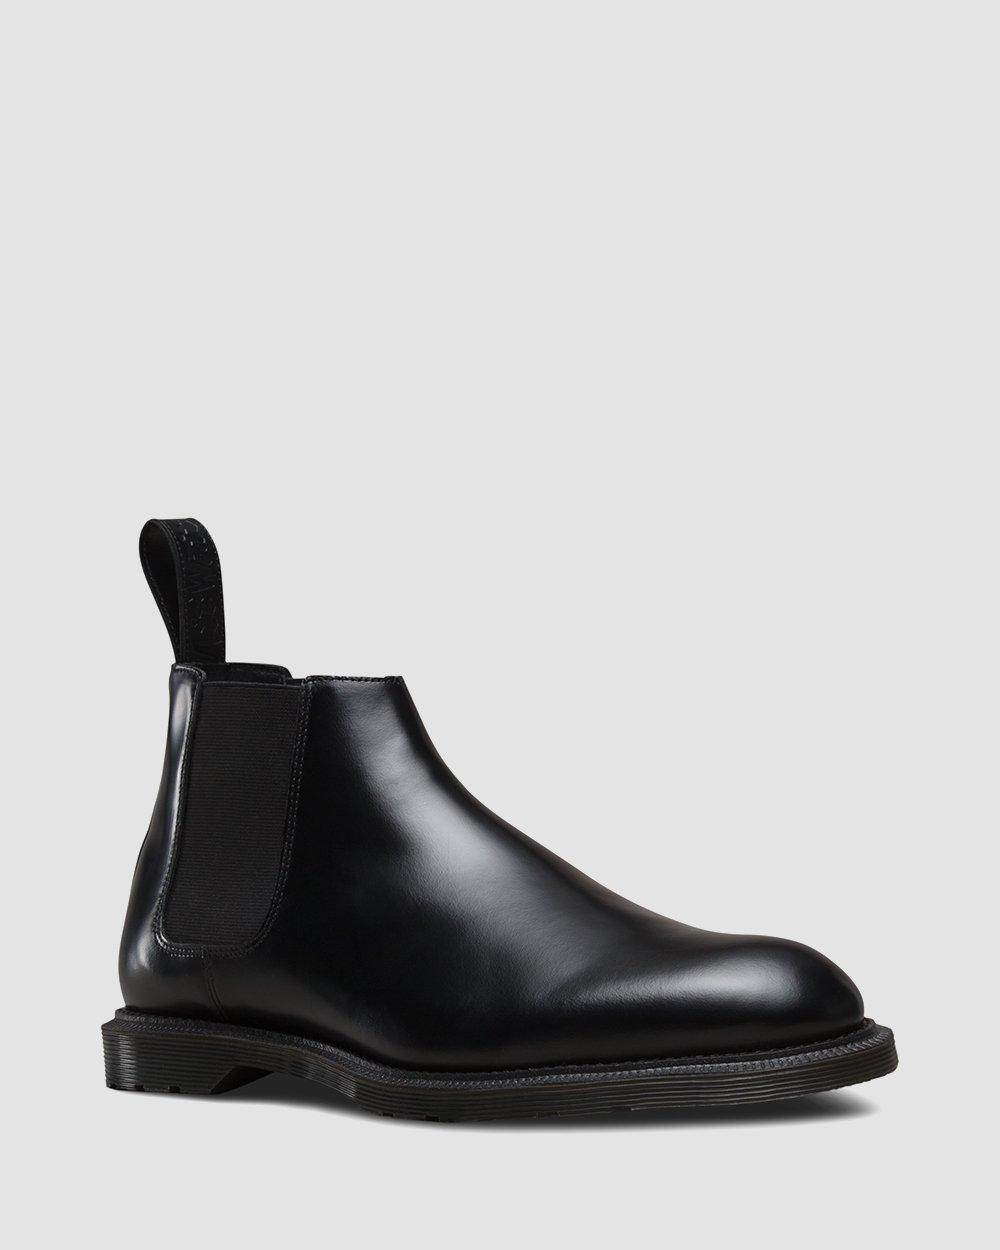 Dr. Martens Wilde Low Chelsea Boot: : Chaussures et